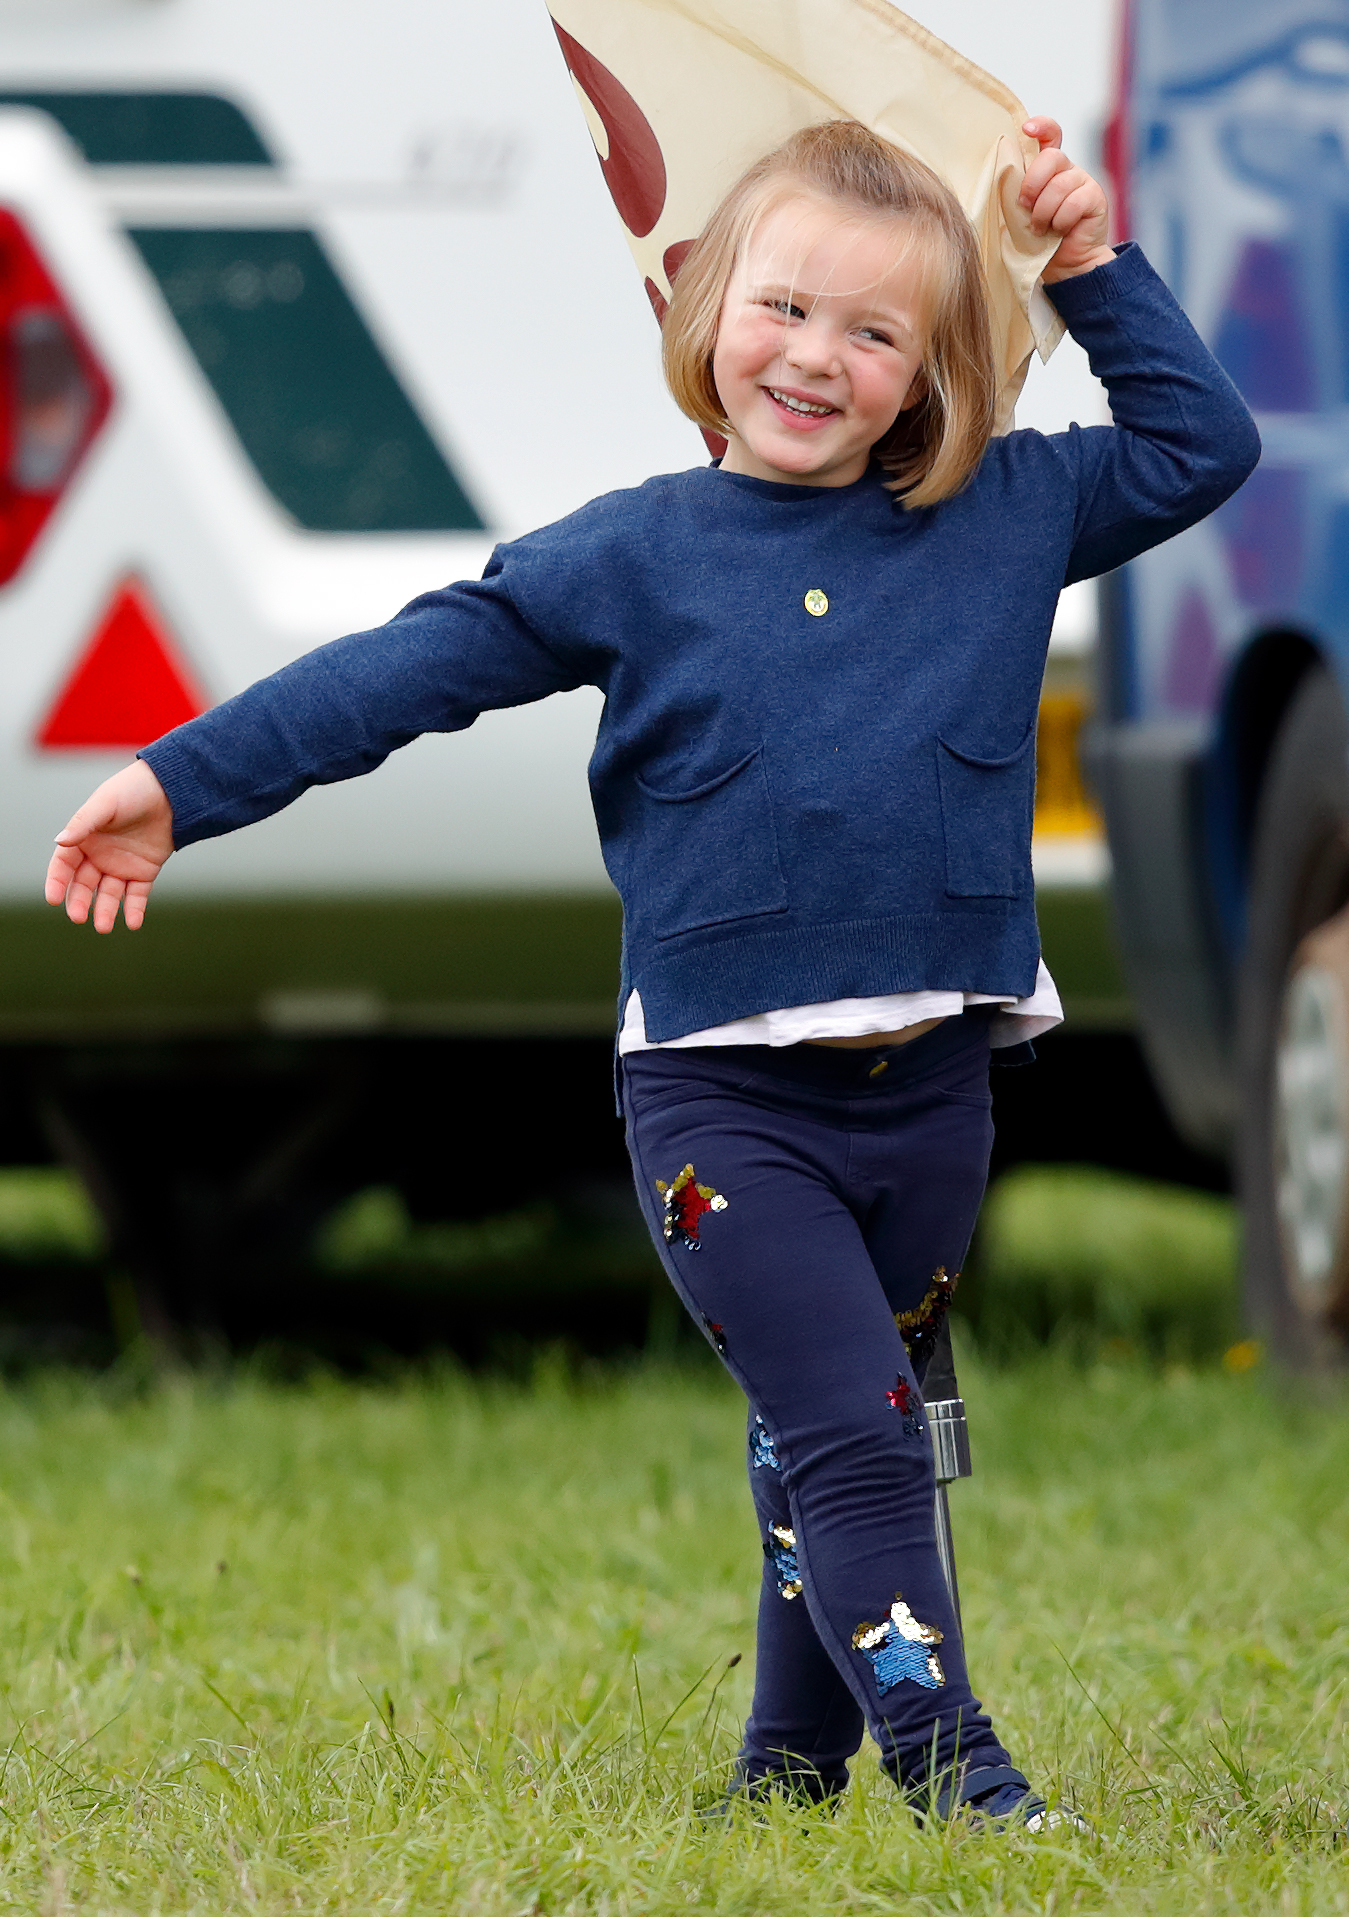 The Whatley Manor Horse Trials